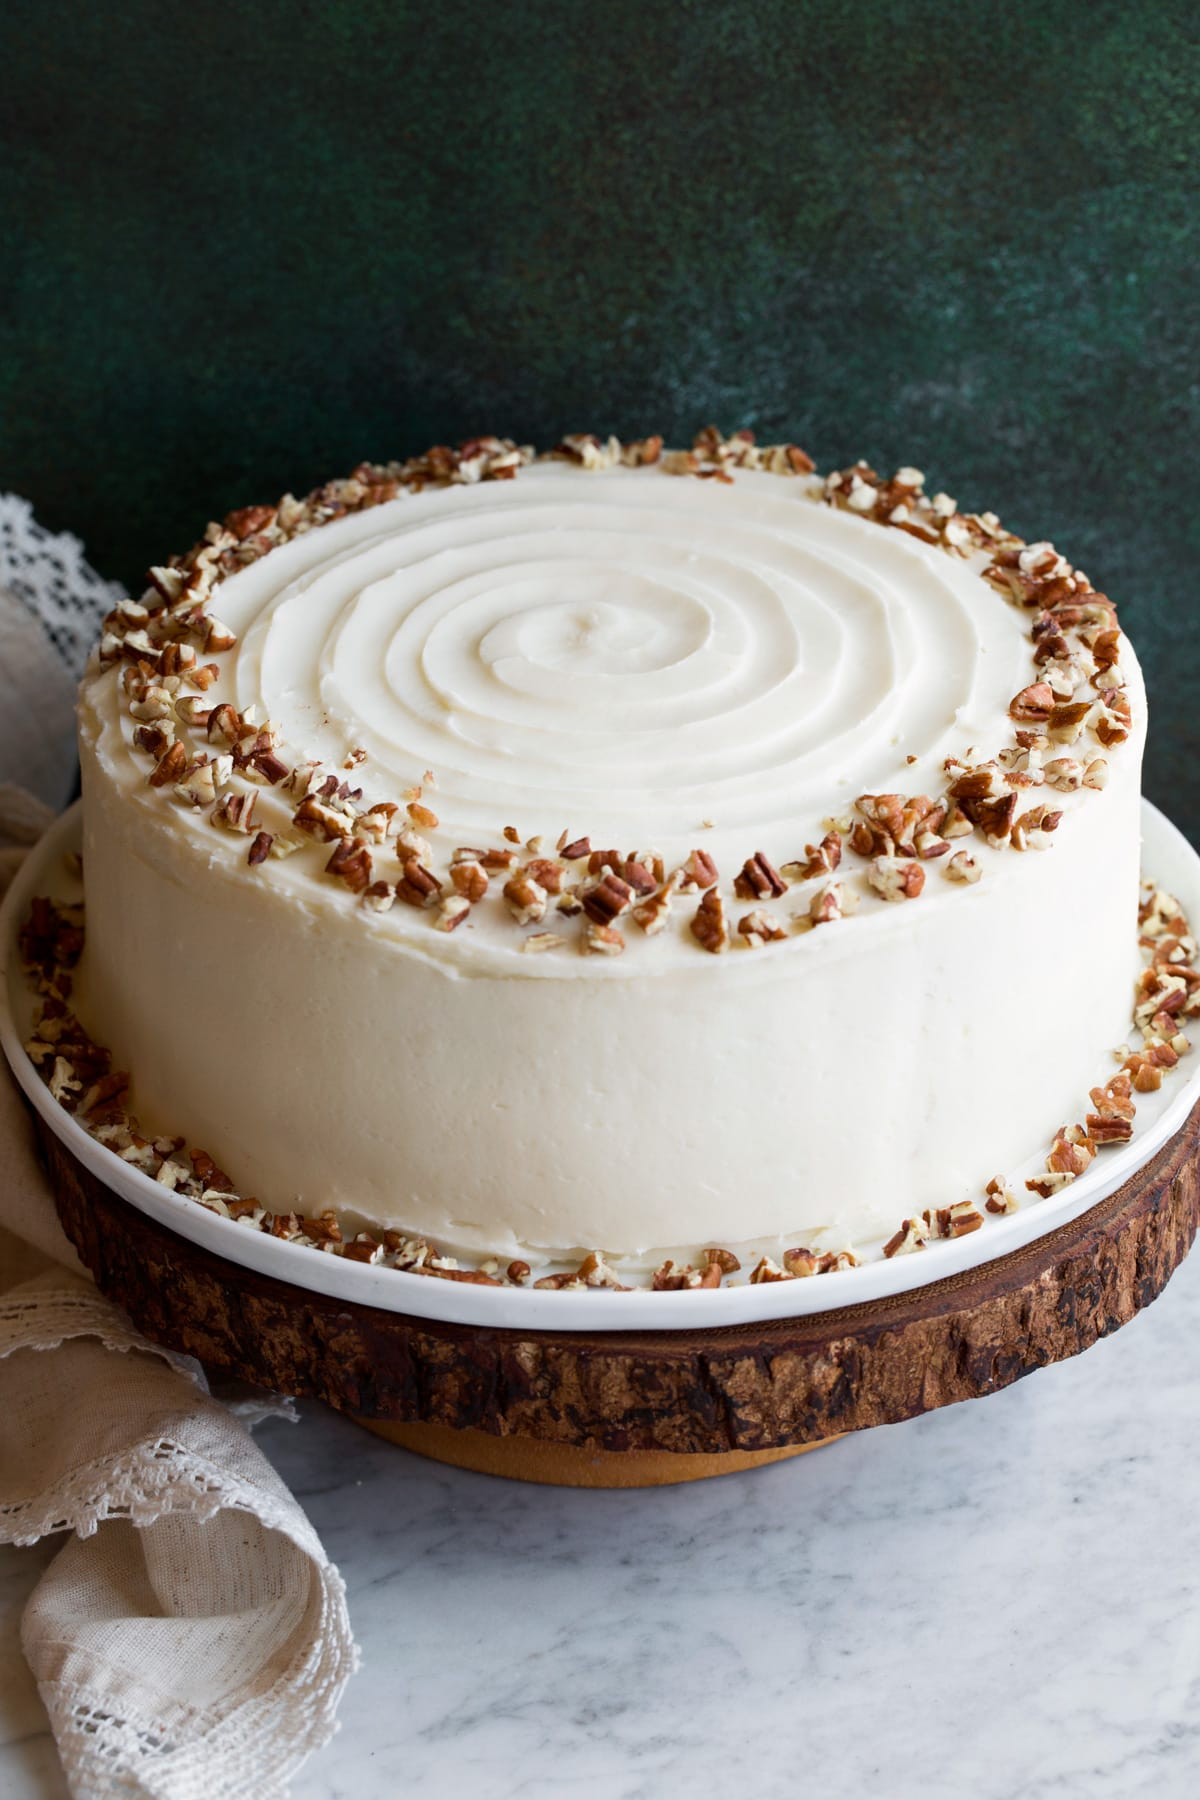 Cake on a wooden cake stand covered in cream cheese frosting and garnished with a wring of chopped pecans on top.